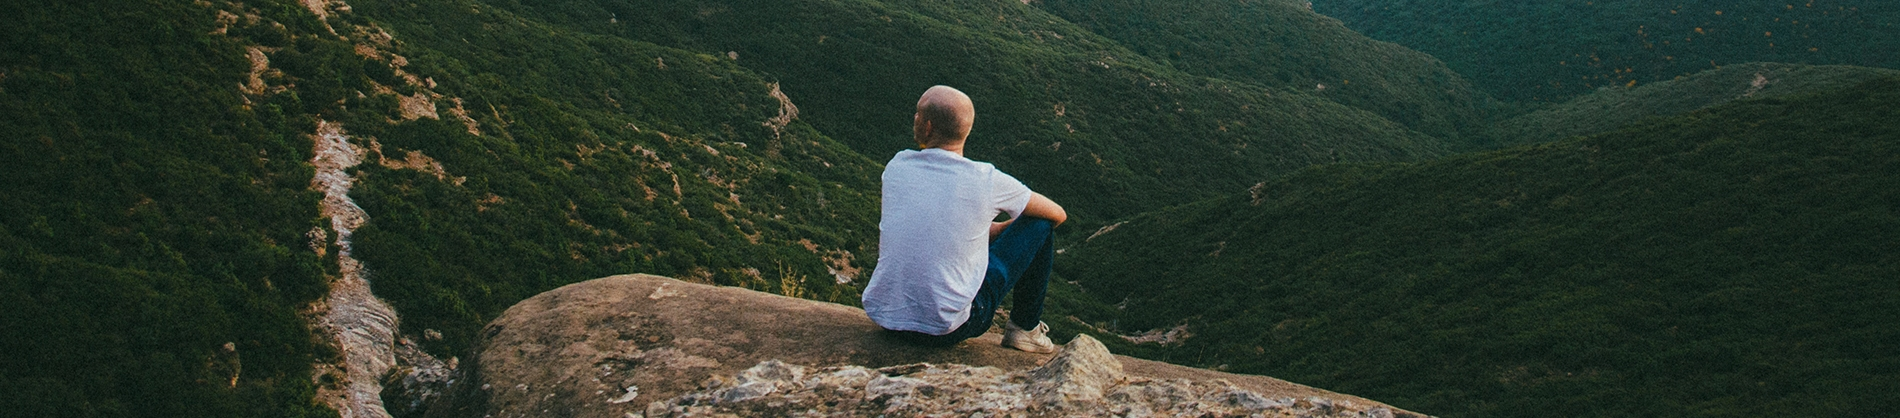 A man sat on the edge of a cliff overlooking a landscape